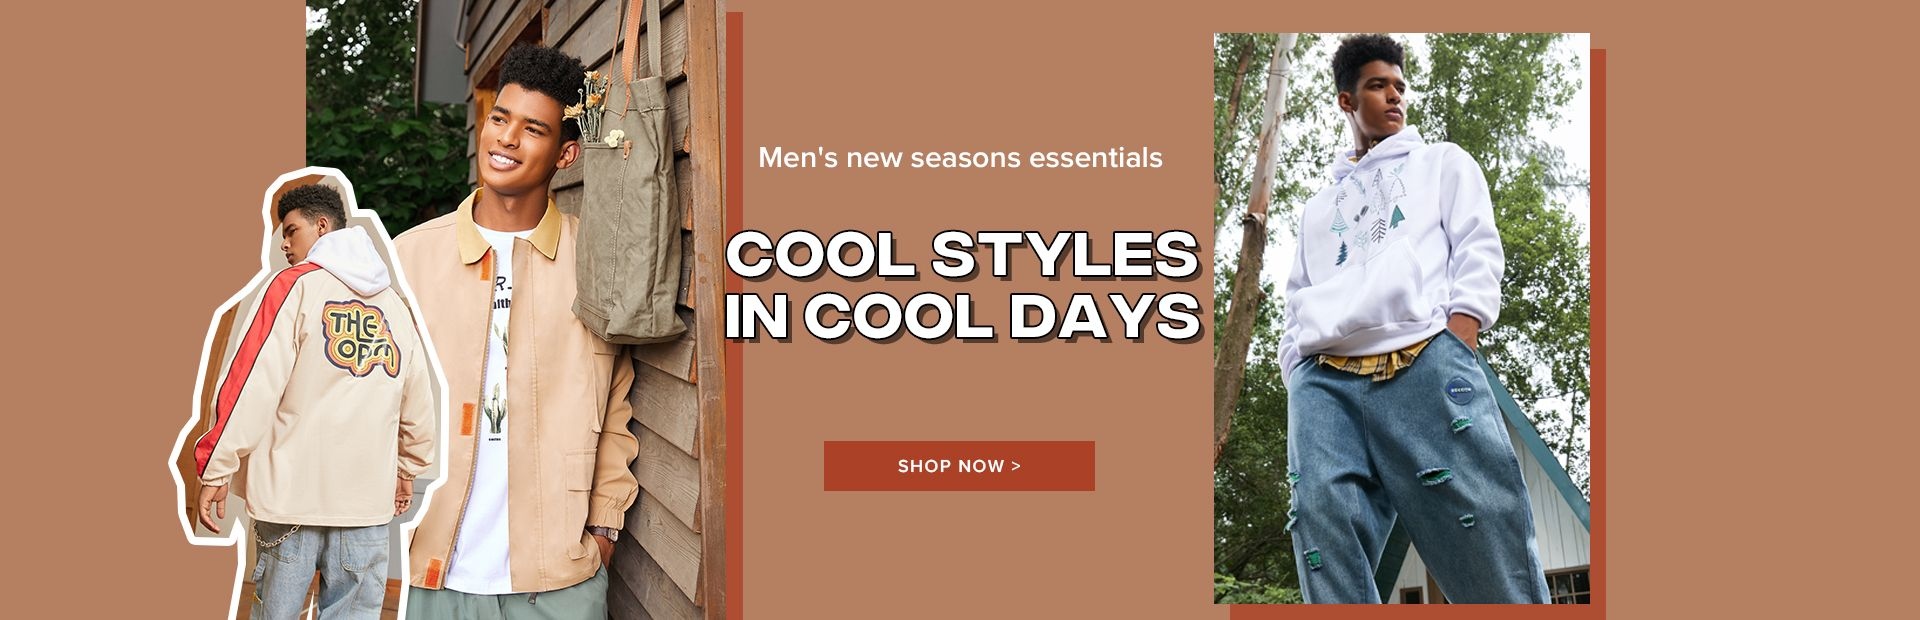 zaful.com - Avail Up To 50% Discount on Men's Clothing